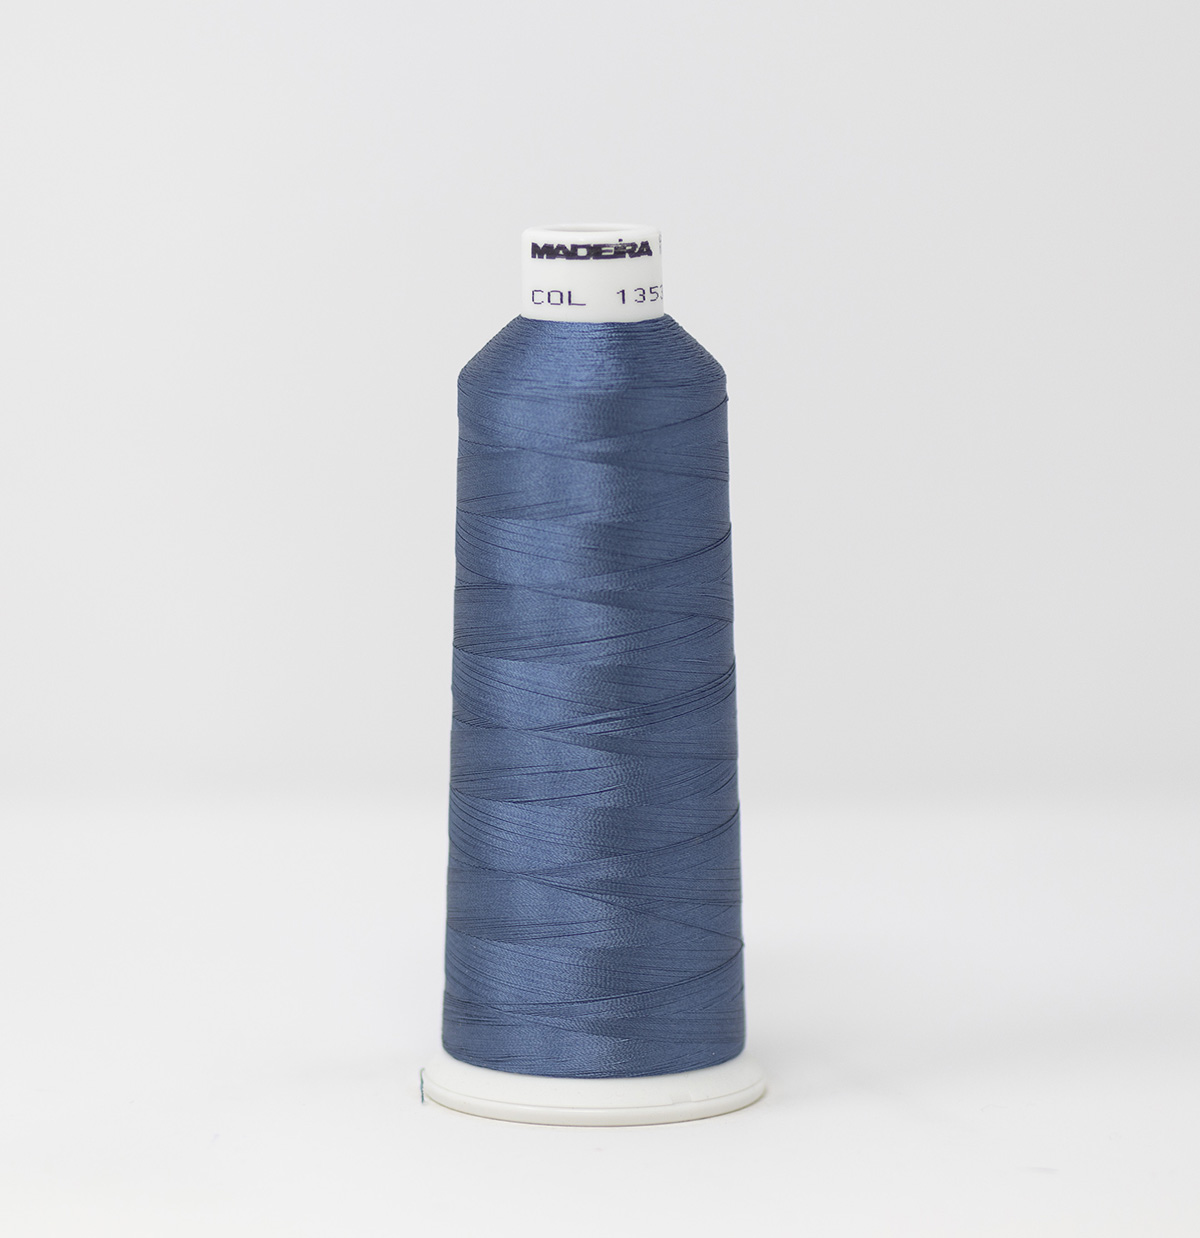 1353 Madeira Rayon Embroidery Thread 1100yd Spool BLUE GRAY Color